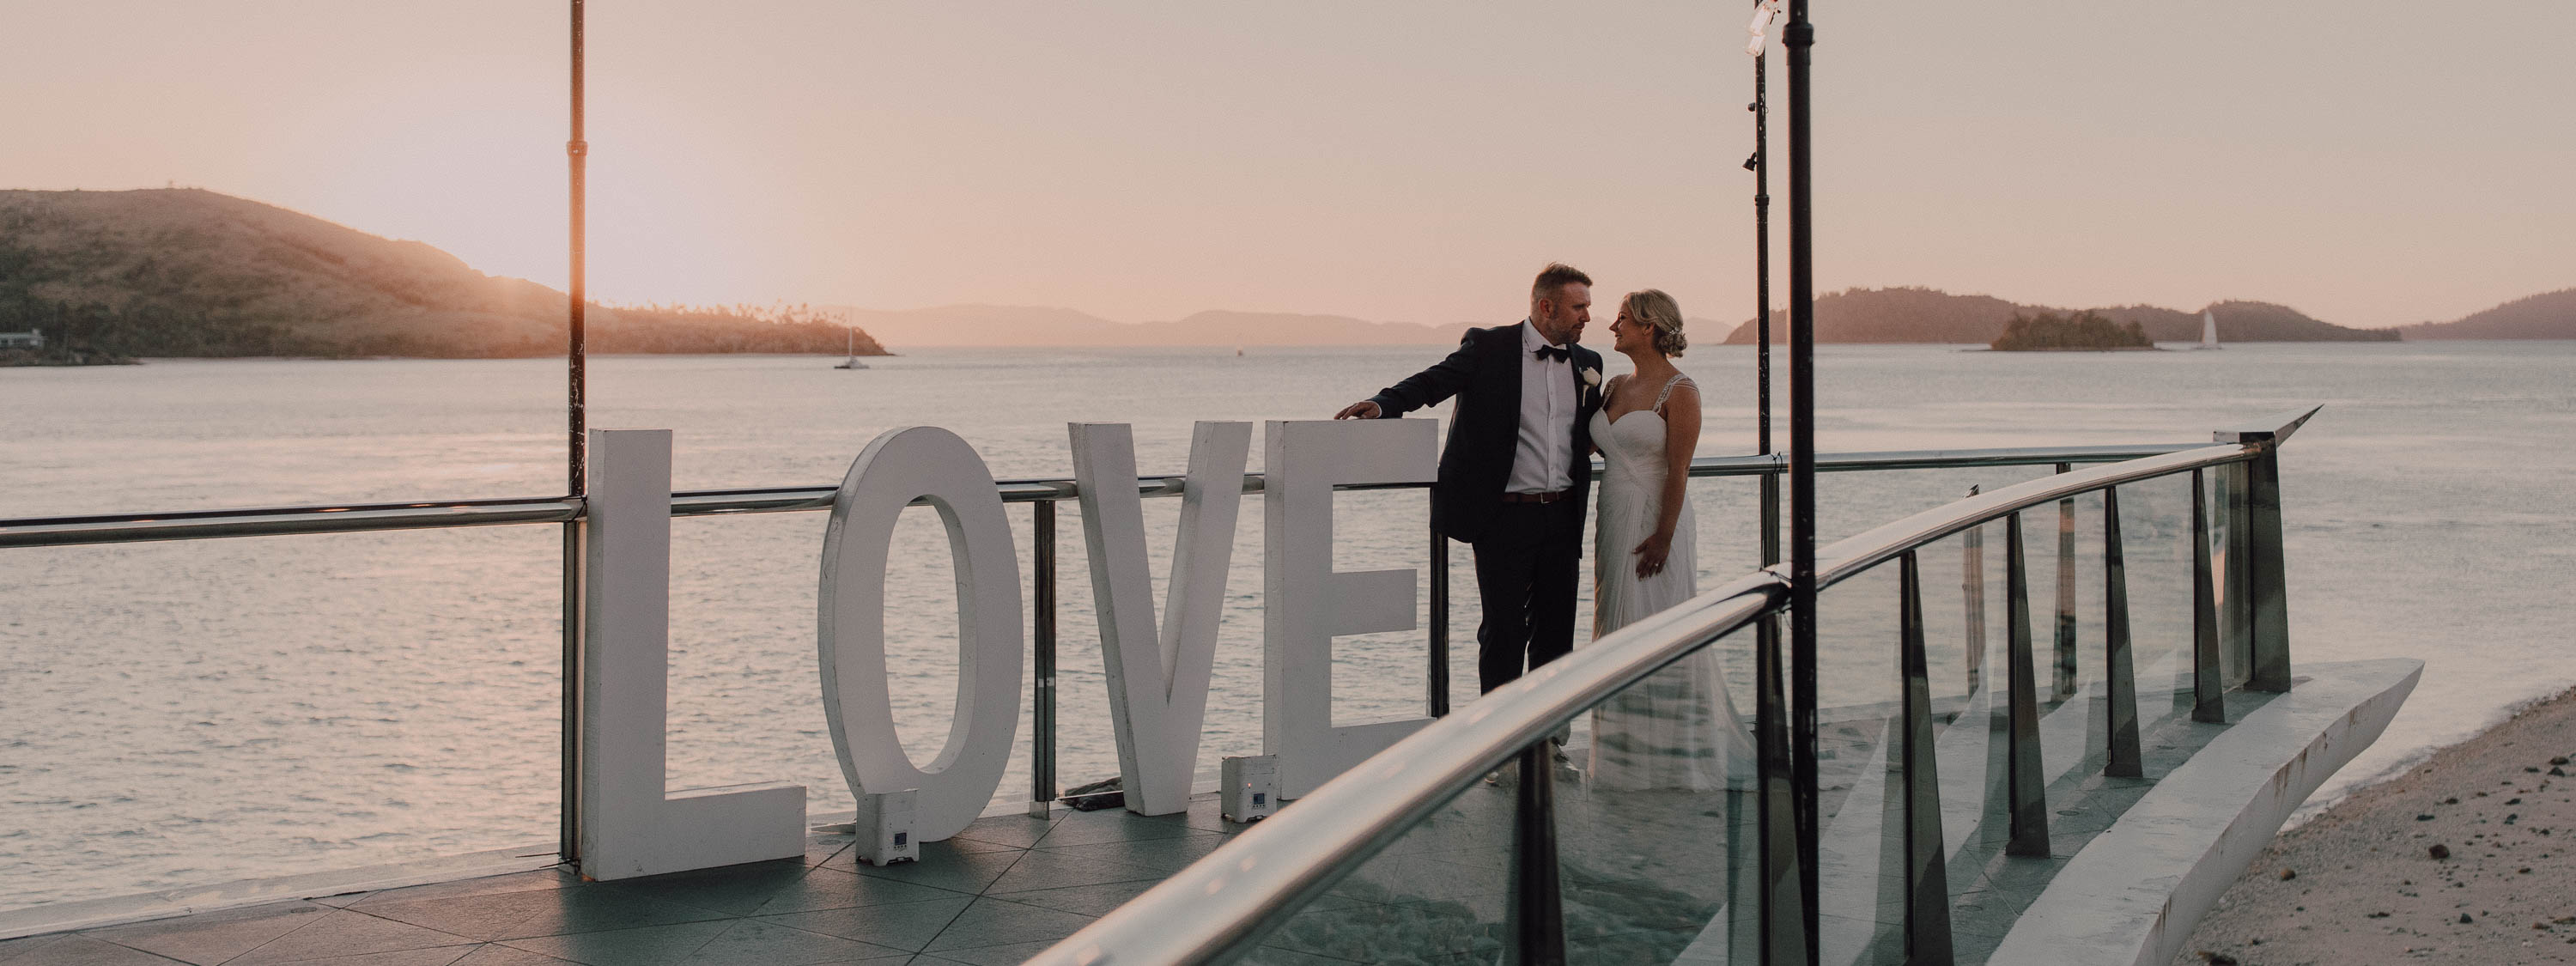 https://www.hamiltonislandweddings.com/wp-content/uploads/2018/08/0R9A2444-1.jpg